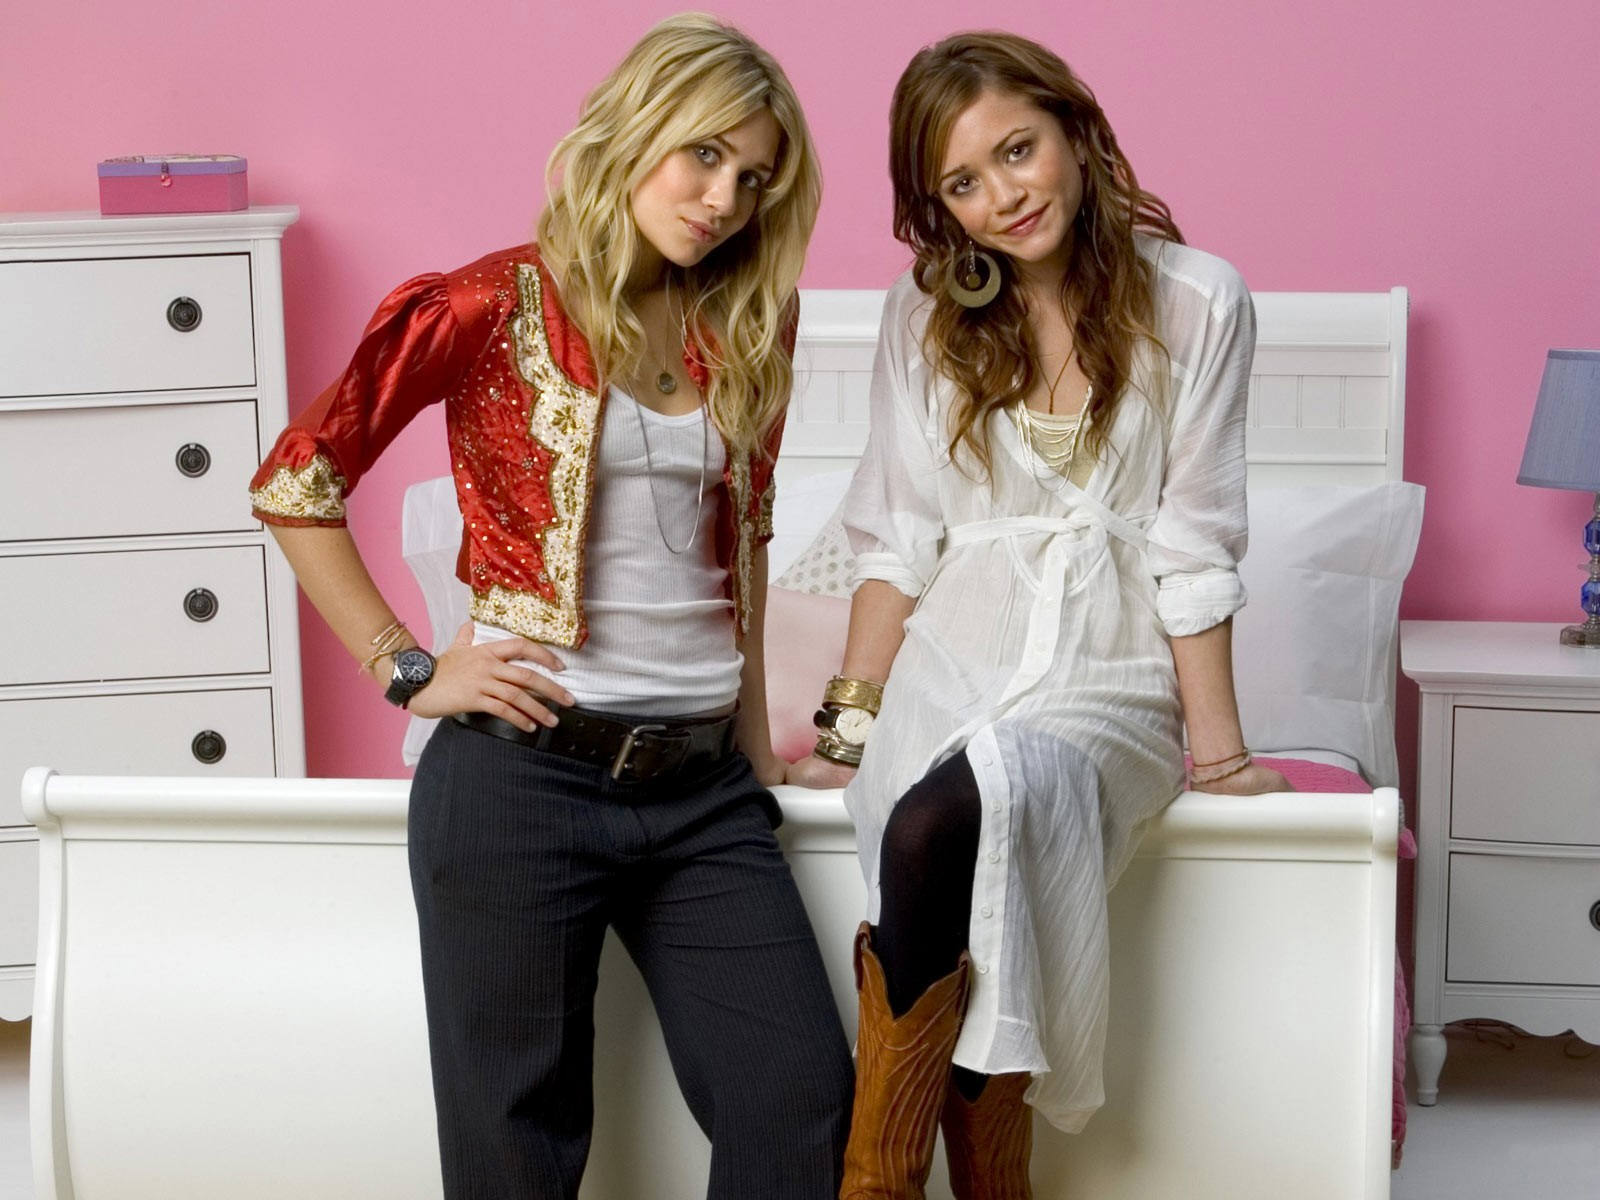 Mary Kate & Ashley Olsen unity Pictures, Images and Photos